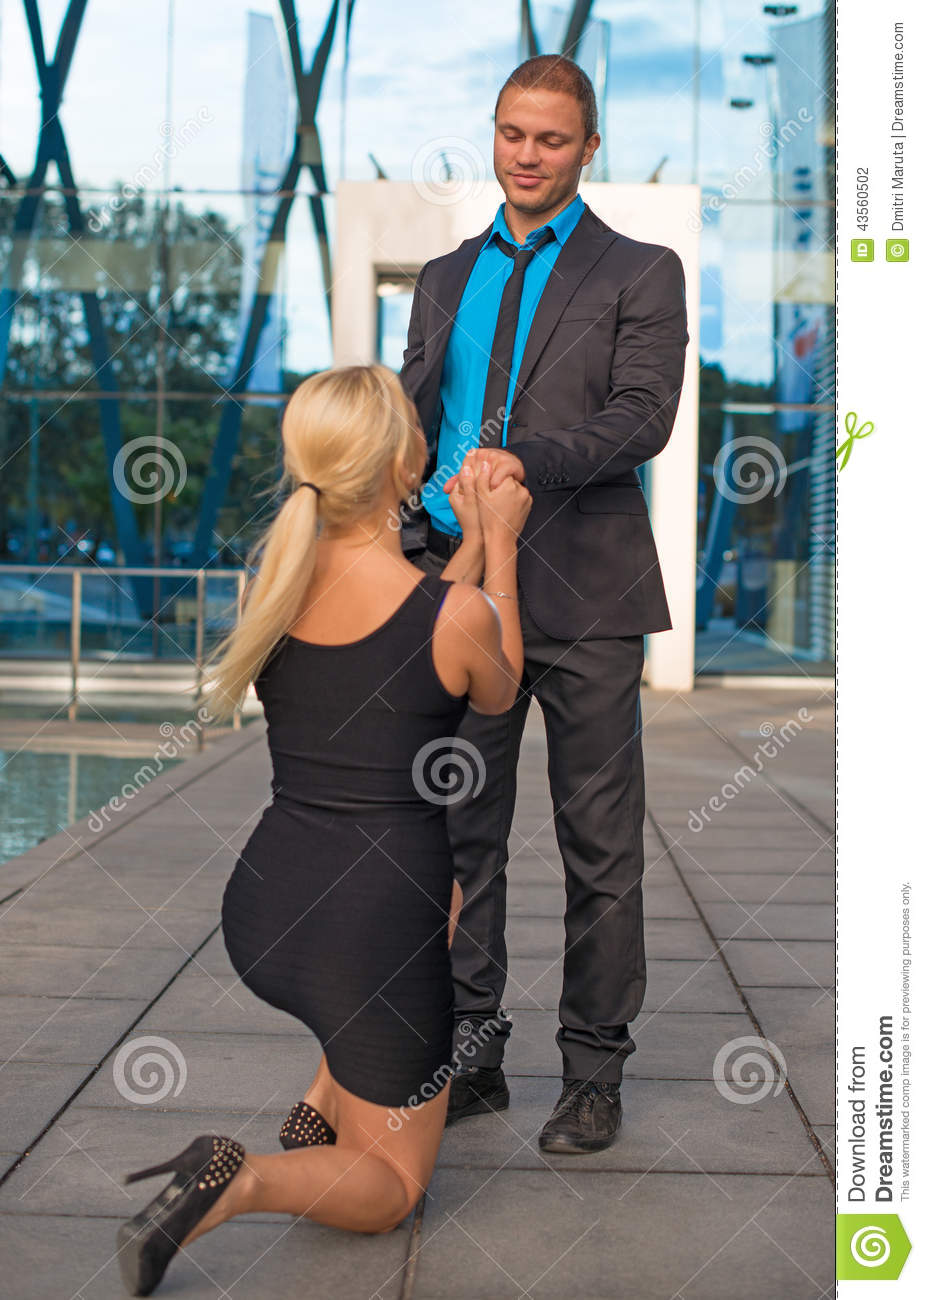 How to make a man propose to a woman